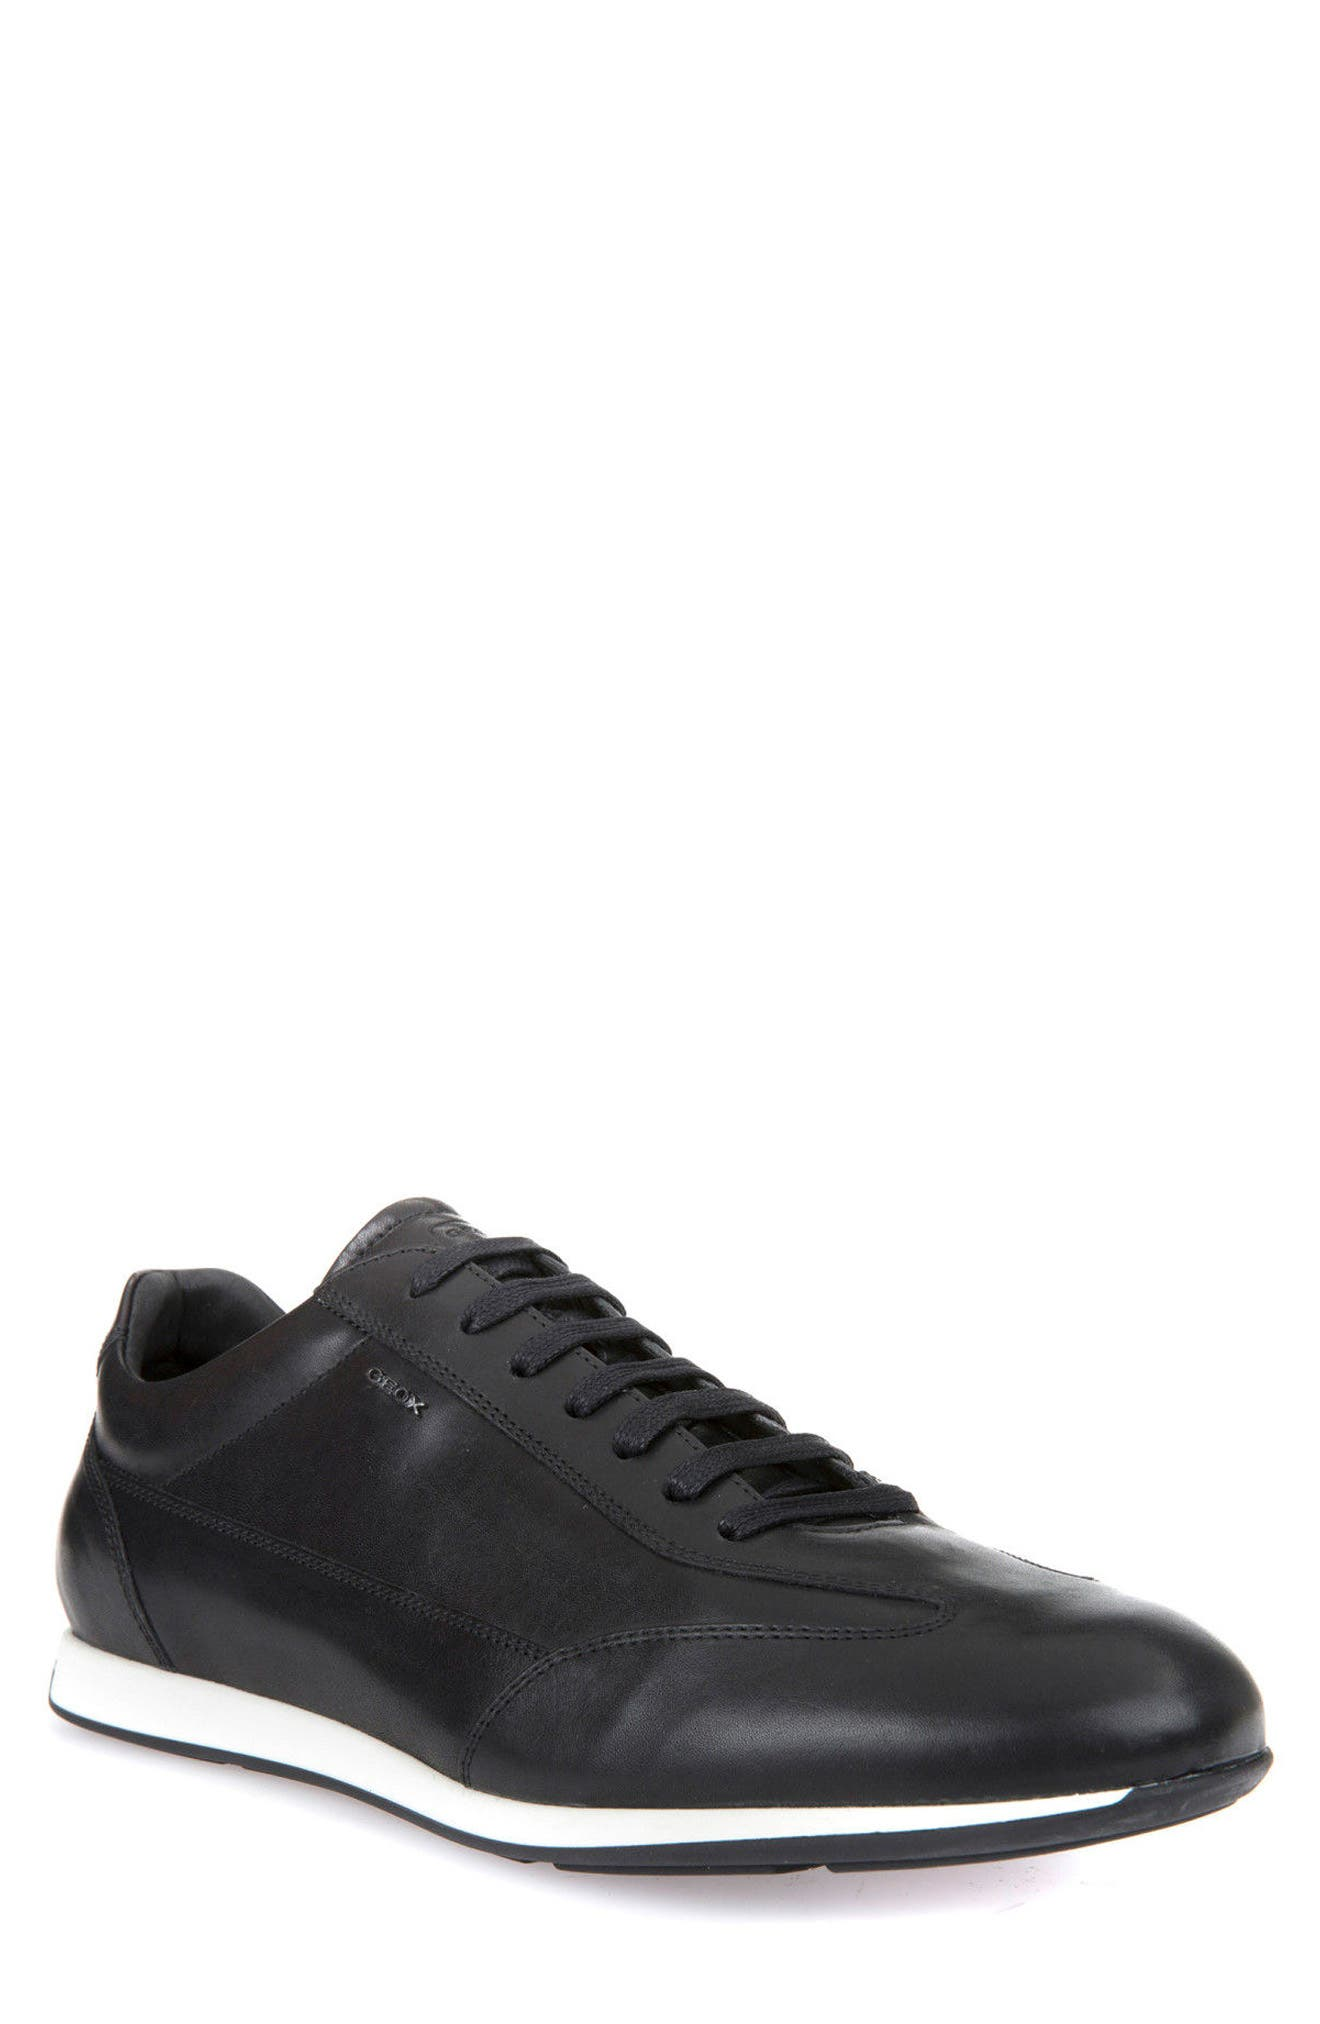 Clemet 1 Sneaker,                         Main,                         color, Black Leather